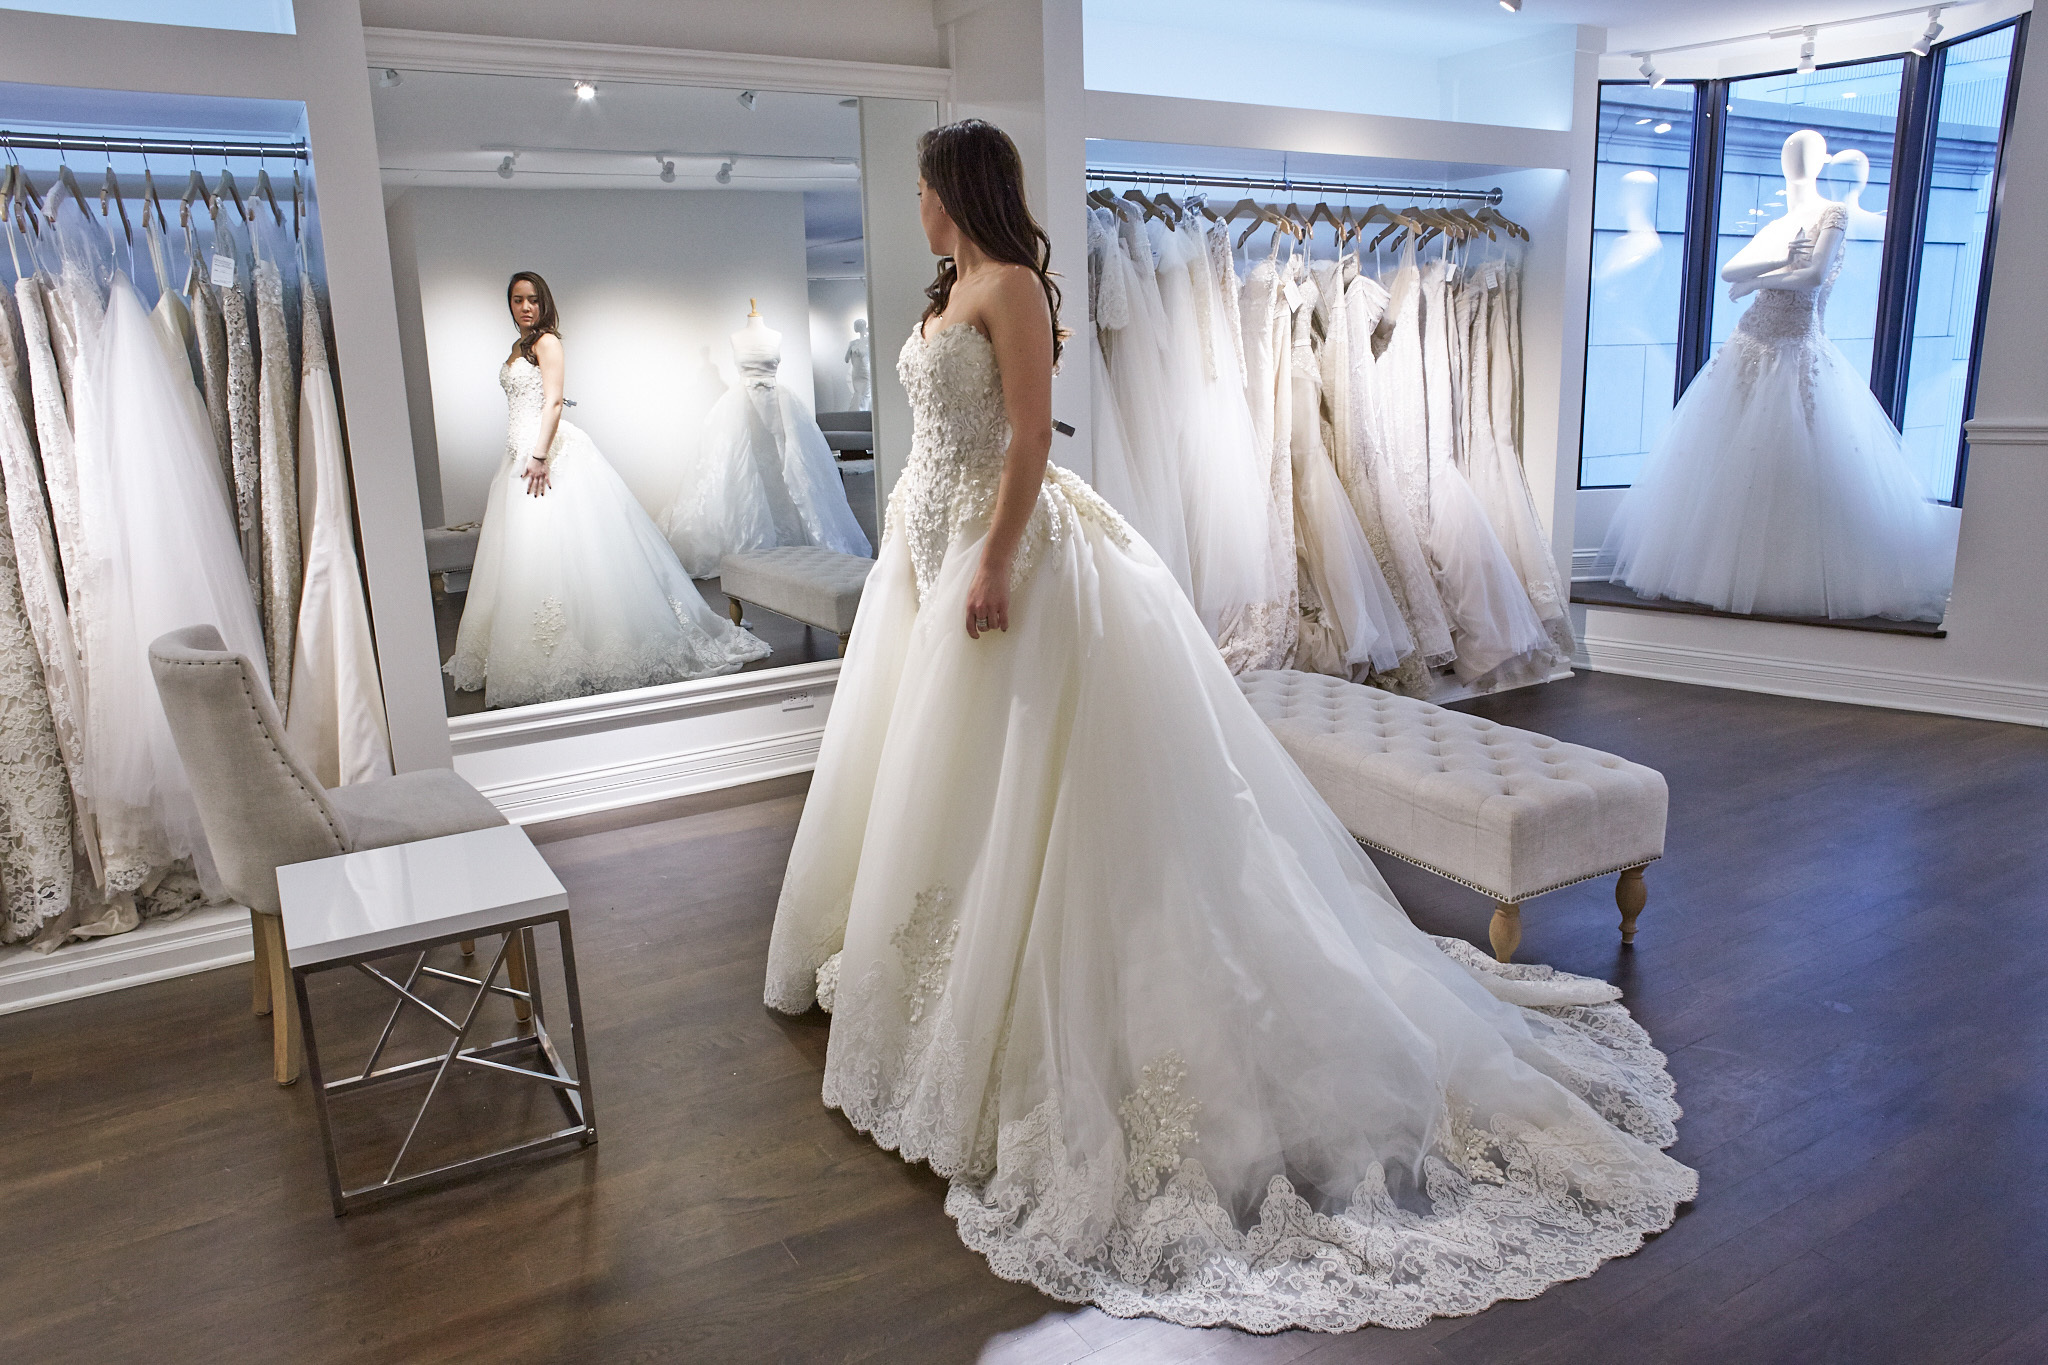 The best bridal shops in chicago for the perfect wedding dress for Best stores for dresses for weddings